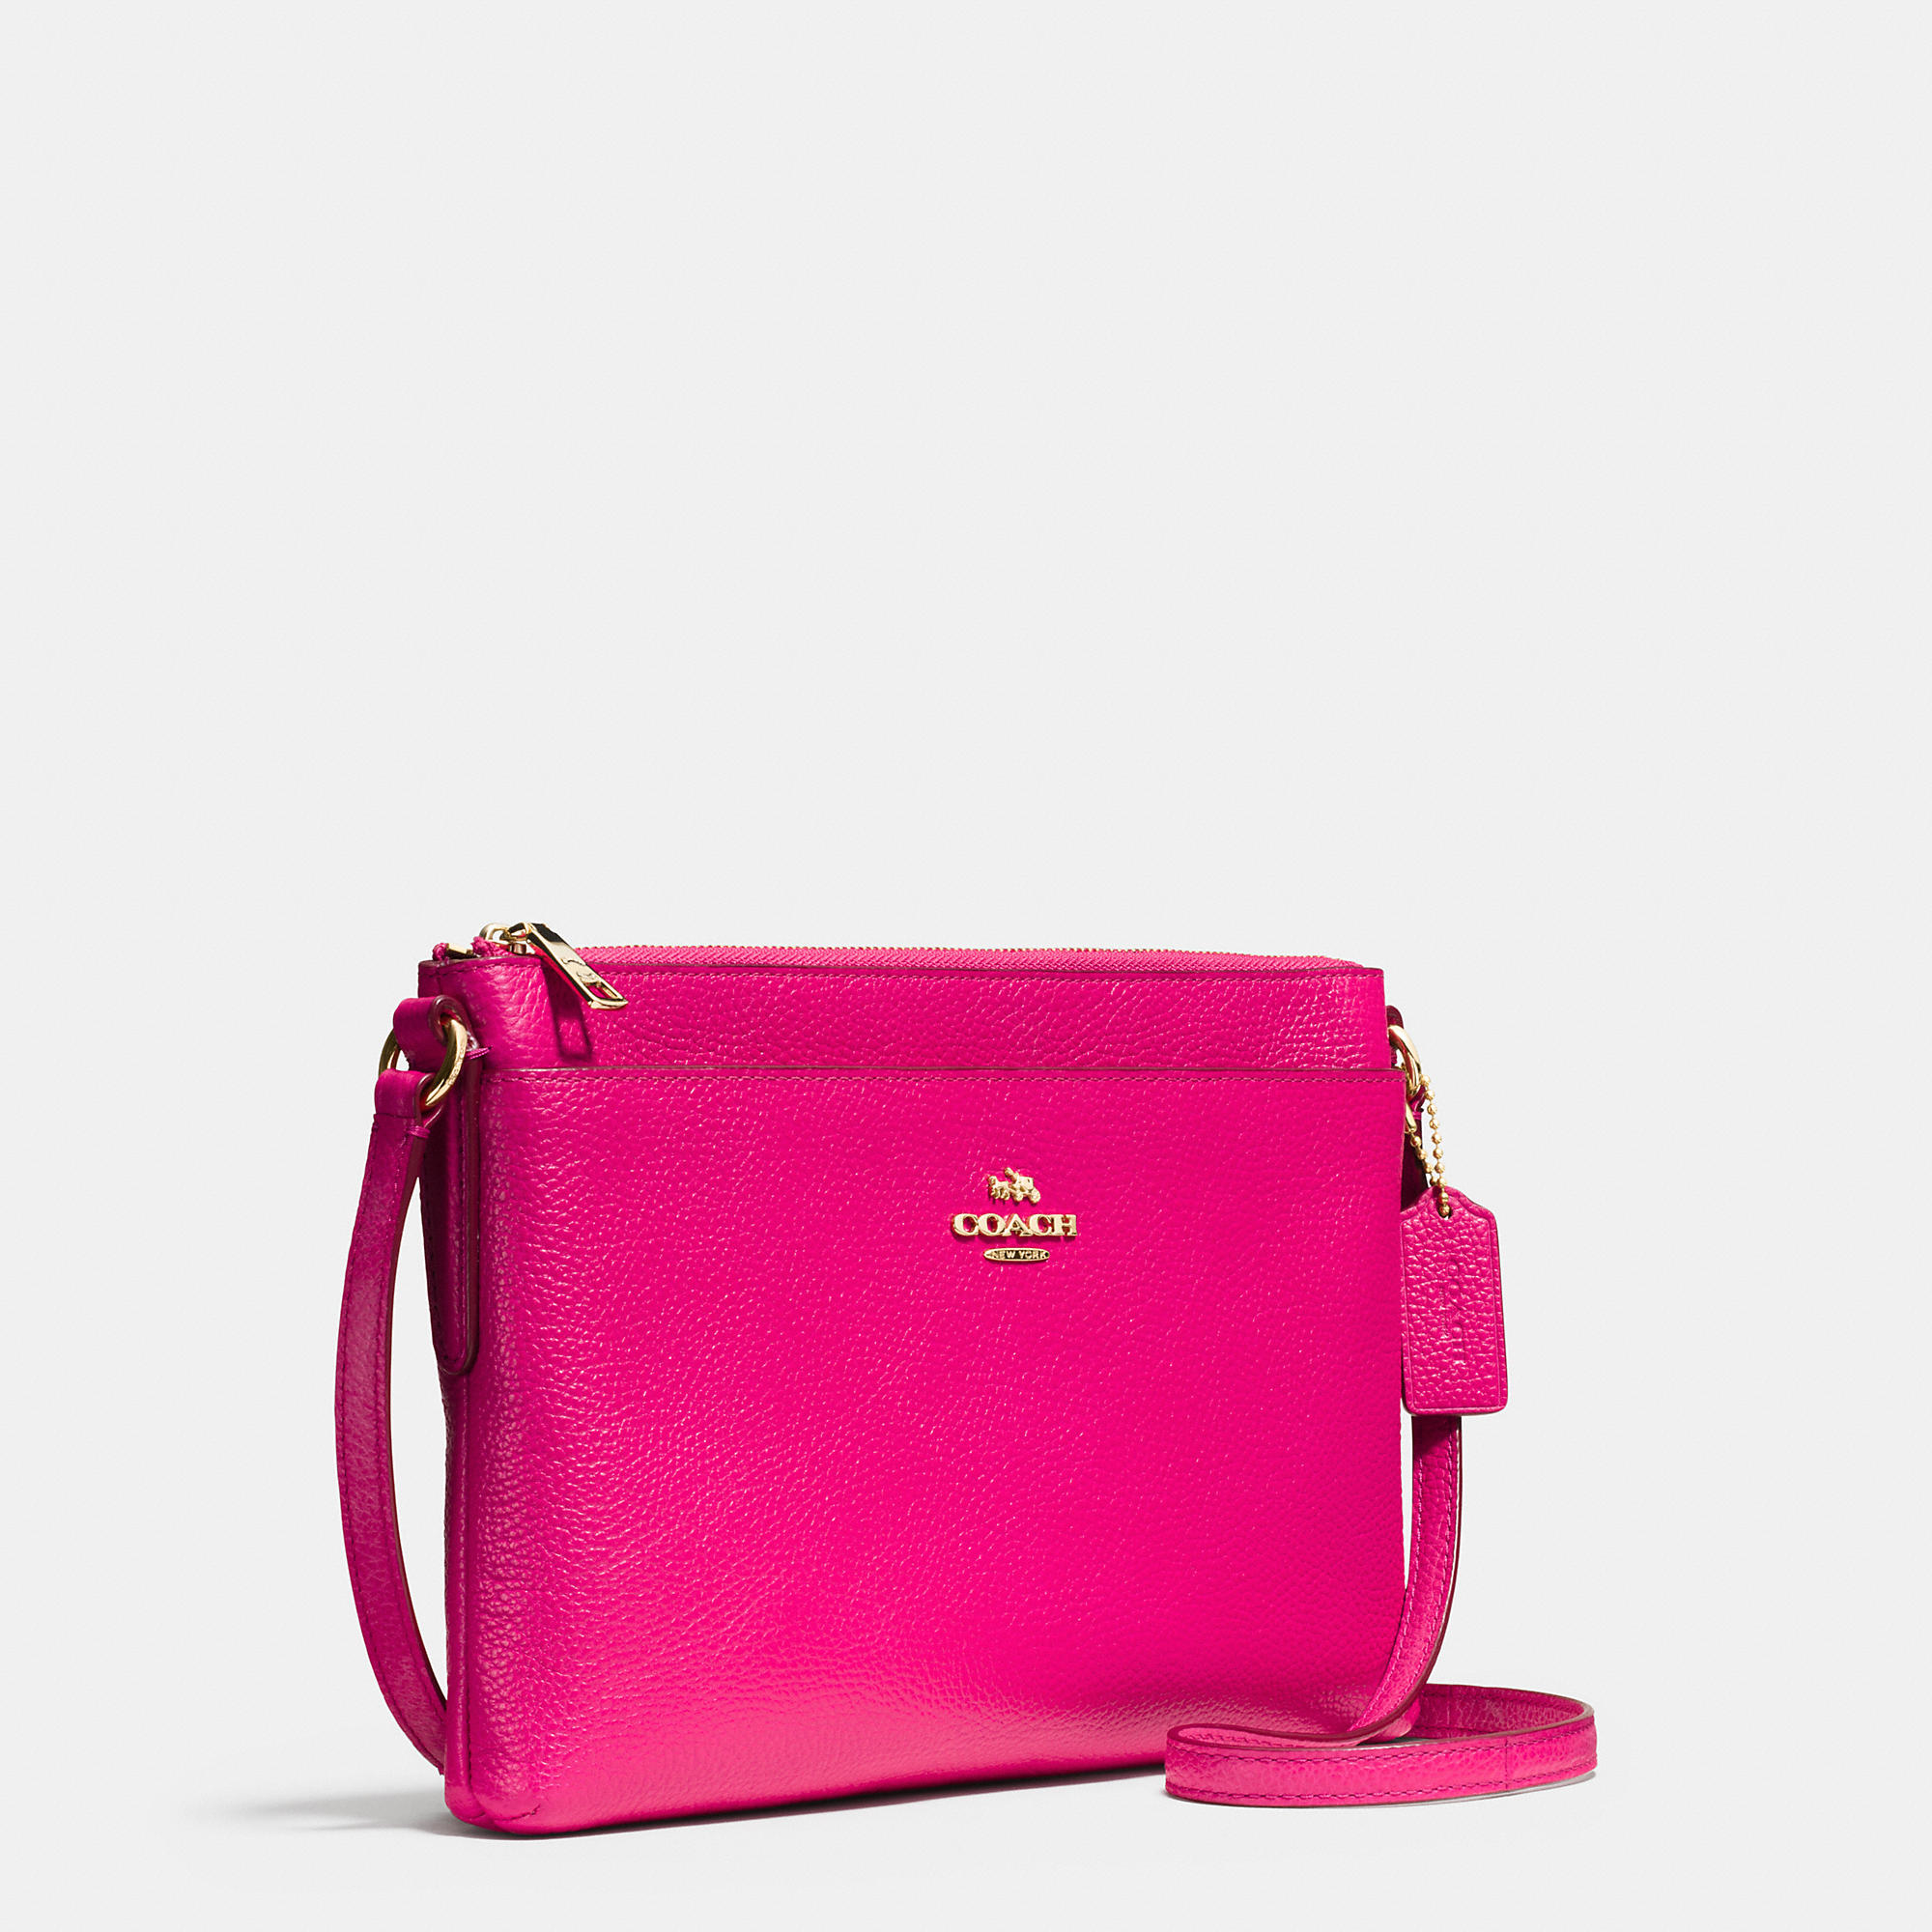 lyst coach journal crossbody in pebble leather in pink rh lyst com